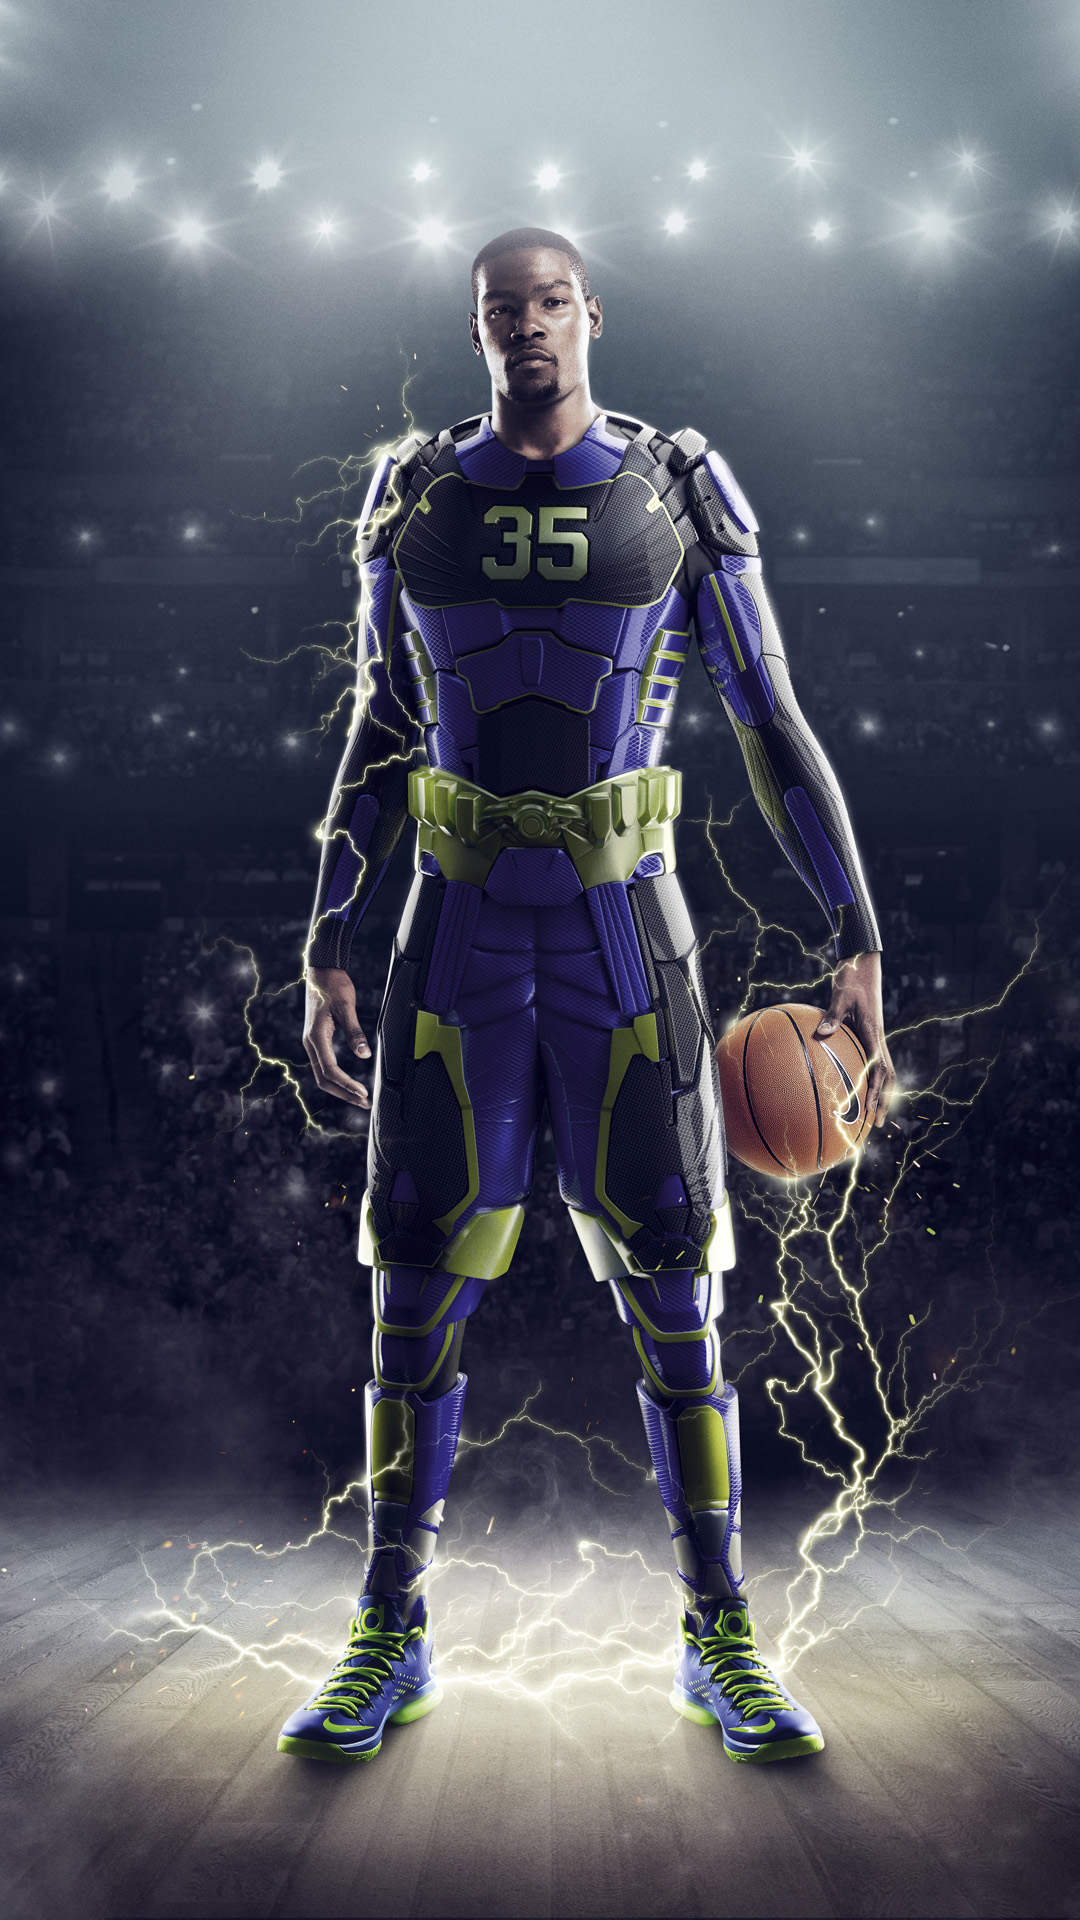 Kevin Durant htc one wallpaper - Best htc one wallpapers